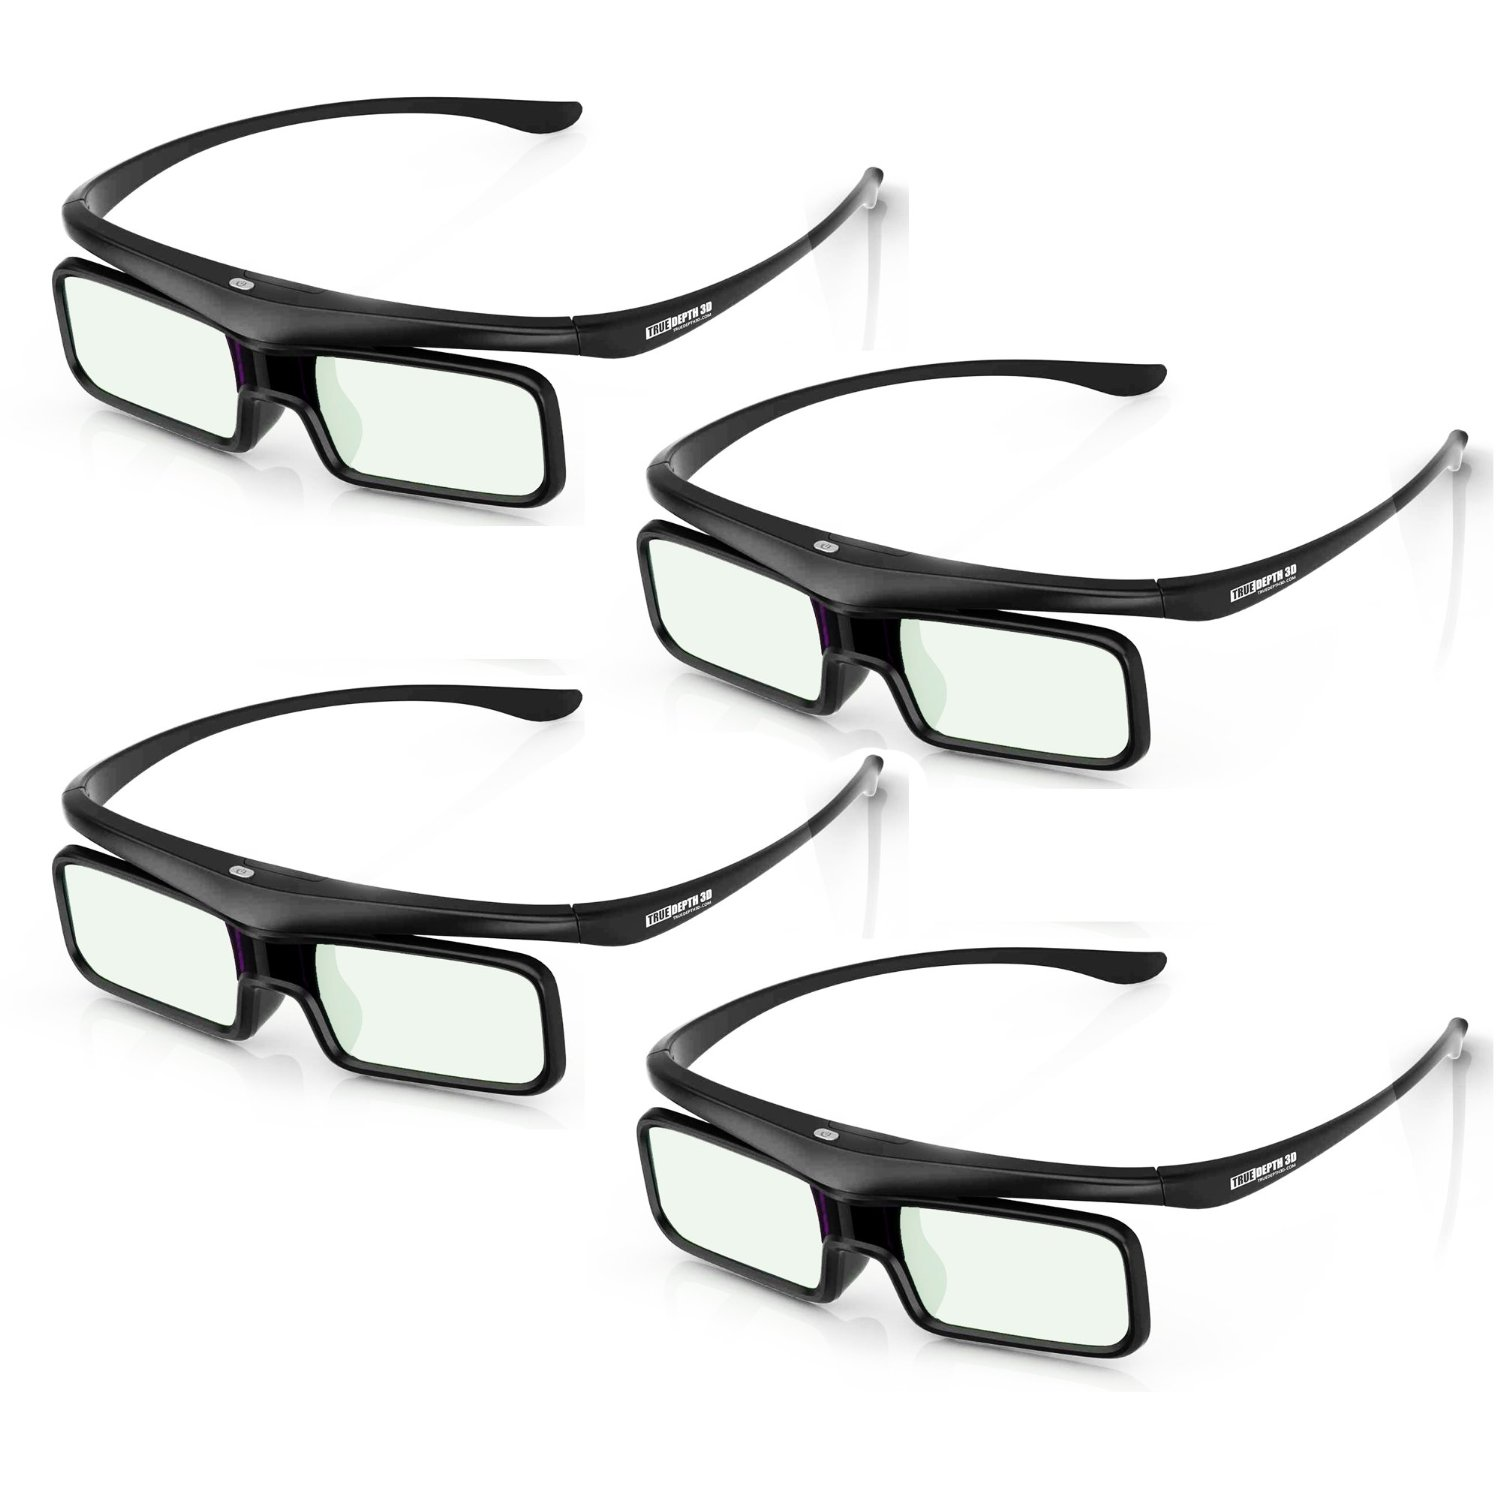 True Depth 3D® Firestorm BT Glasses for Bluetooth Mitsubishi 3D TVs (642 and 842 Series) 4 Pairs!